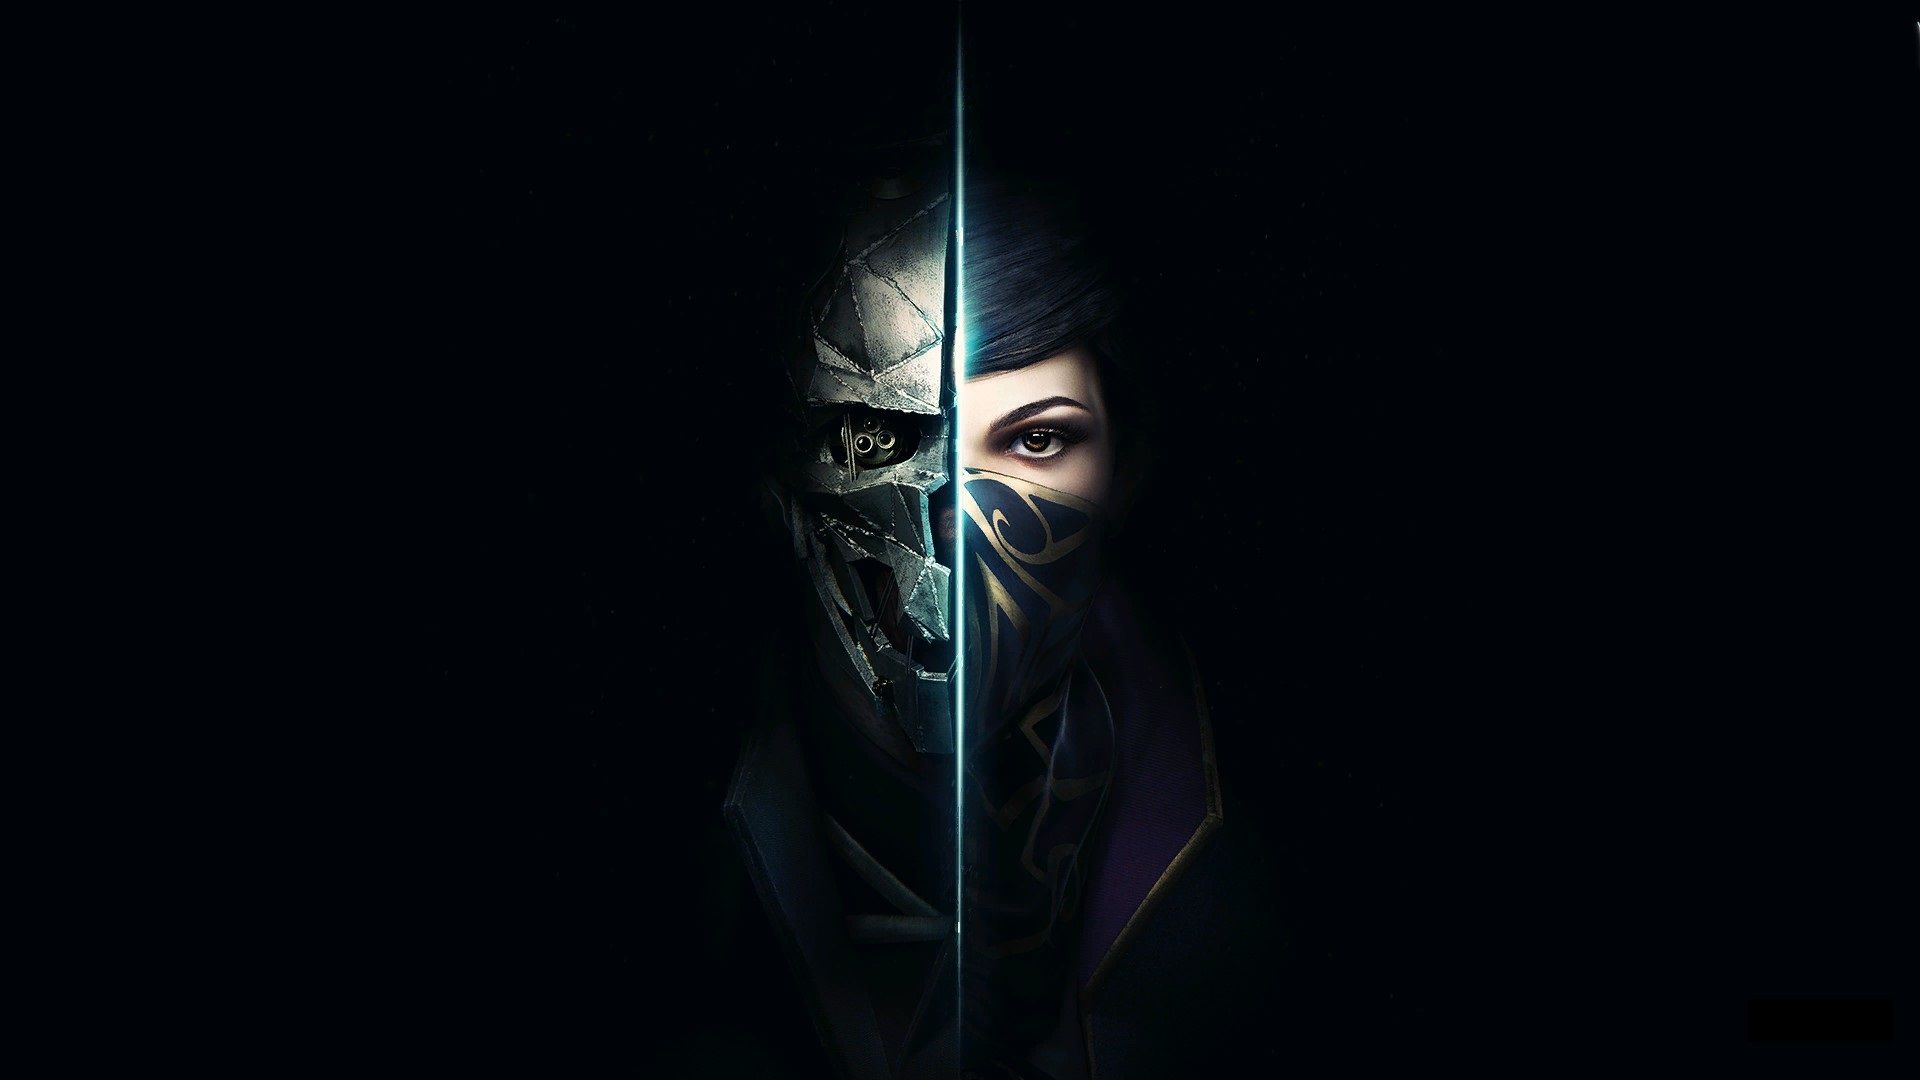 Http Www Pcinvasion Com Wp Content Uploads 2016 11 Dishonored 2 Blade 640x360 Jpg Dishonored 2 Pc Technical R Dishonored 2 Character Illustration Dishonored